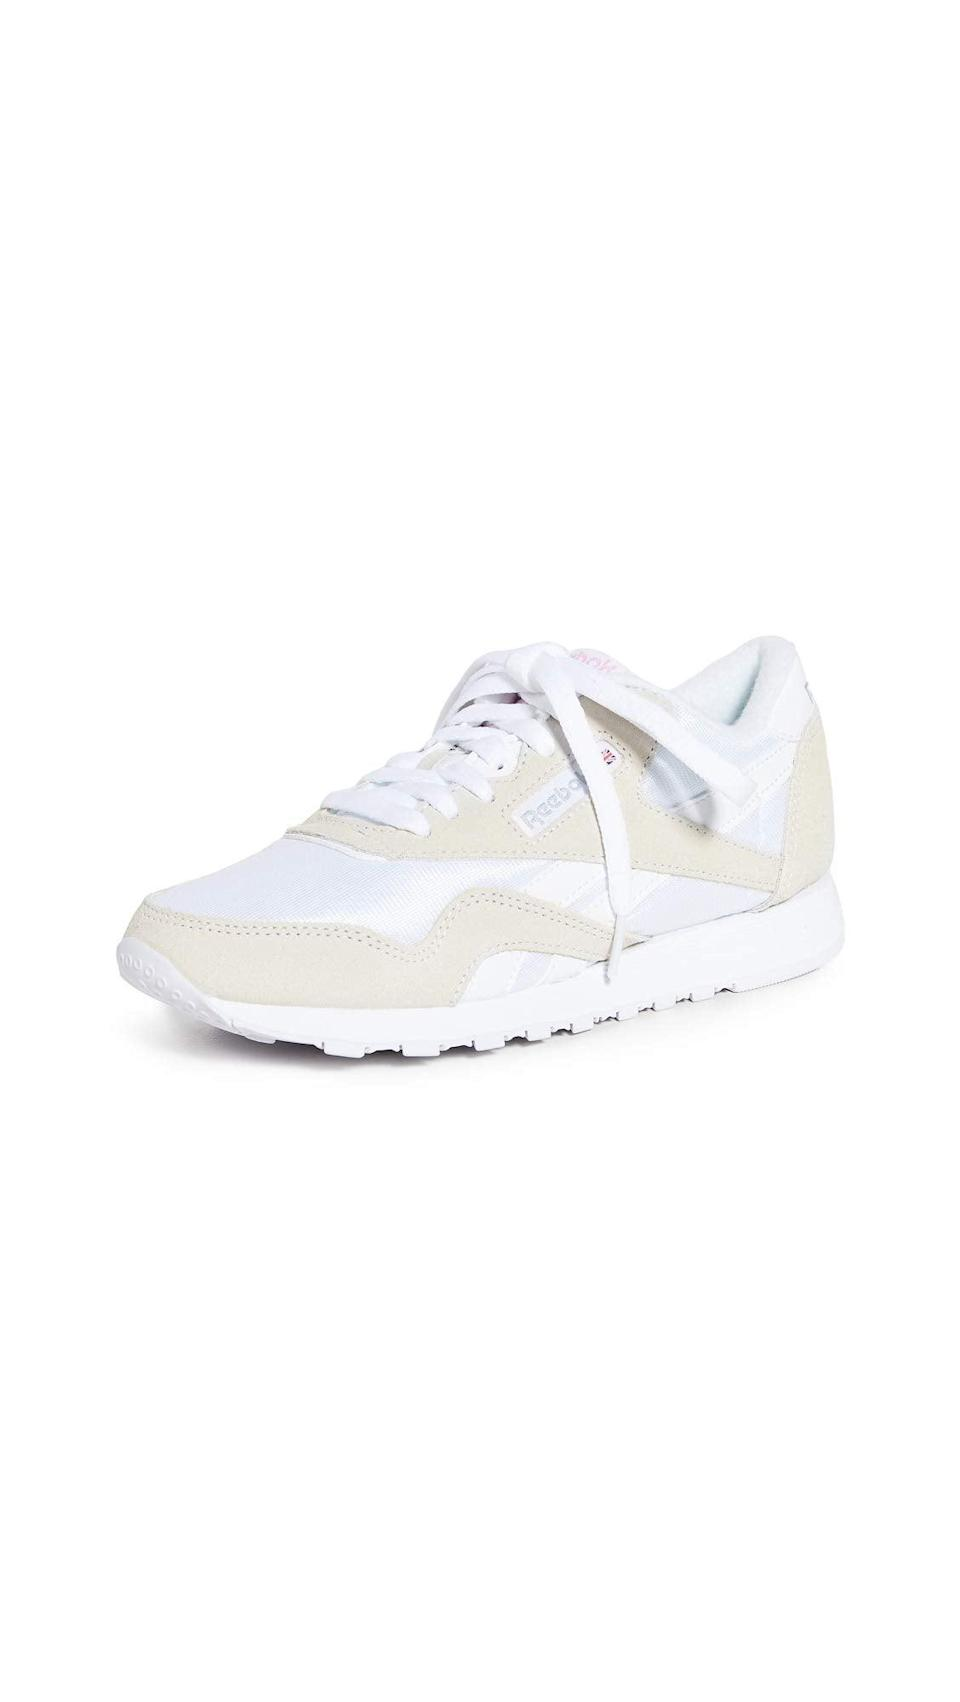 """<h2>Savings on Reebok Sneakers<br></h2><br>Nab your very own pair of dad shoes for up to 40% off during Prime Day with an excellent selection of throwback styles from Reebok.<br><br><em>Shop Reebok at <strong><span>Amazon</span></strong></em><br><br><strong>Reebok</strong> Classic Nylon Sneaker, $, available at <a href=""""https://amzn.to/3zN9Qvi"""" rel=""""nofollow noopener"""" target=""""_blank"""" data-ylk=""""slk:Amazon"""" class=""""link rapid-noclick-resp"""">Amazon</a>"""